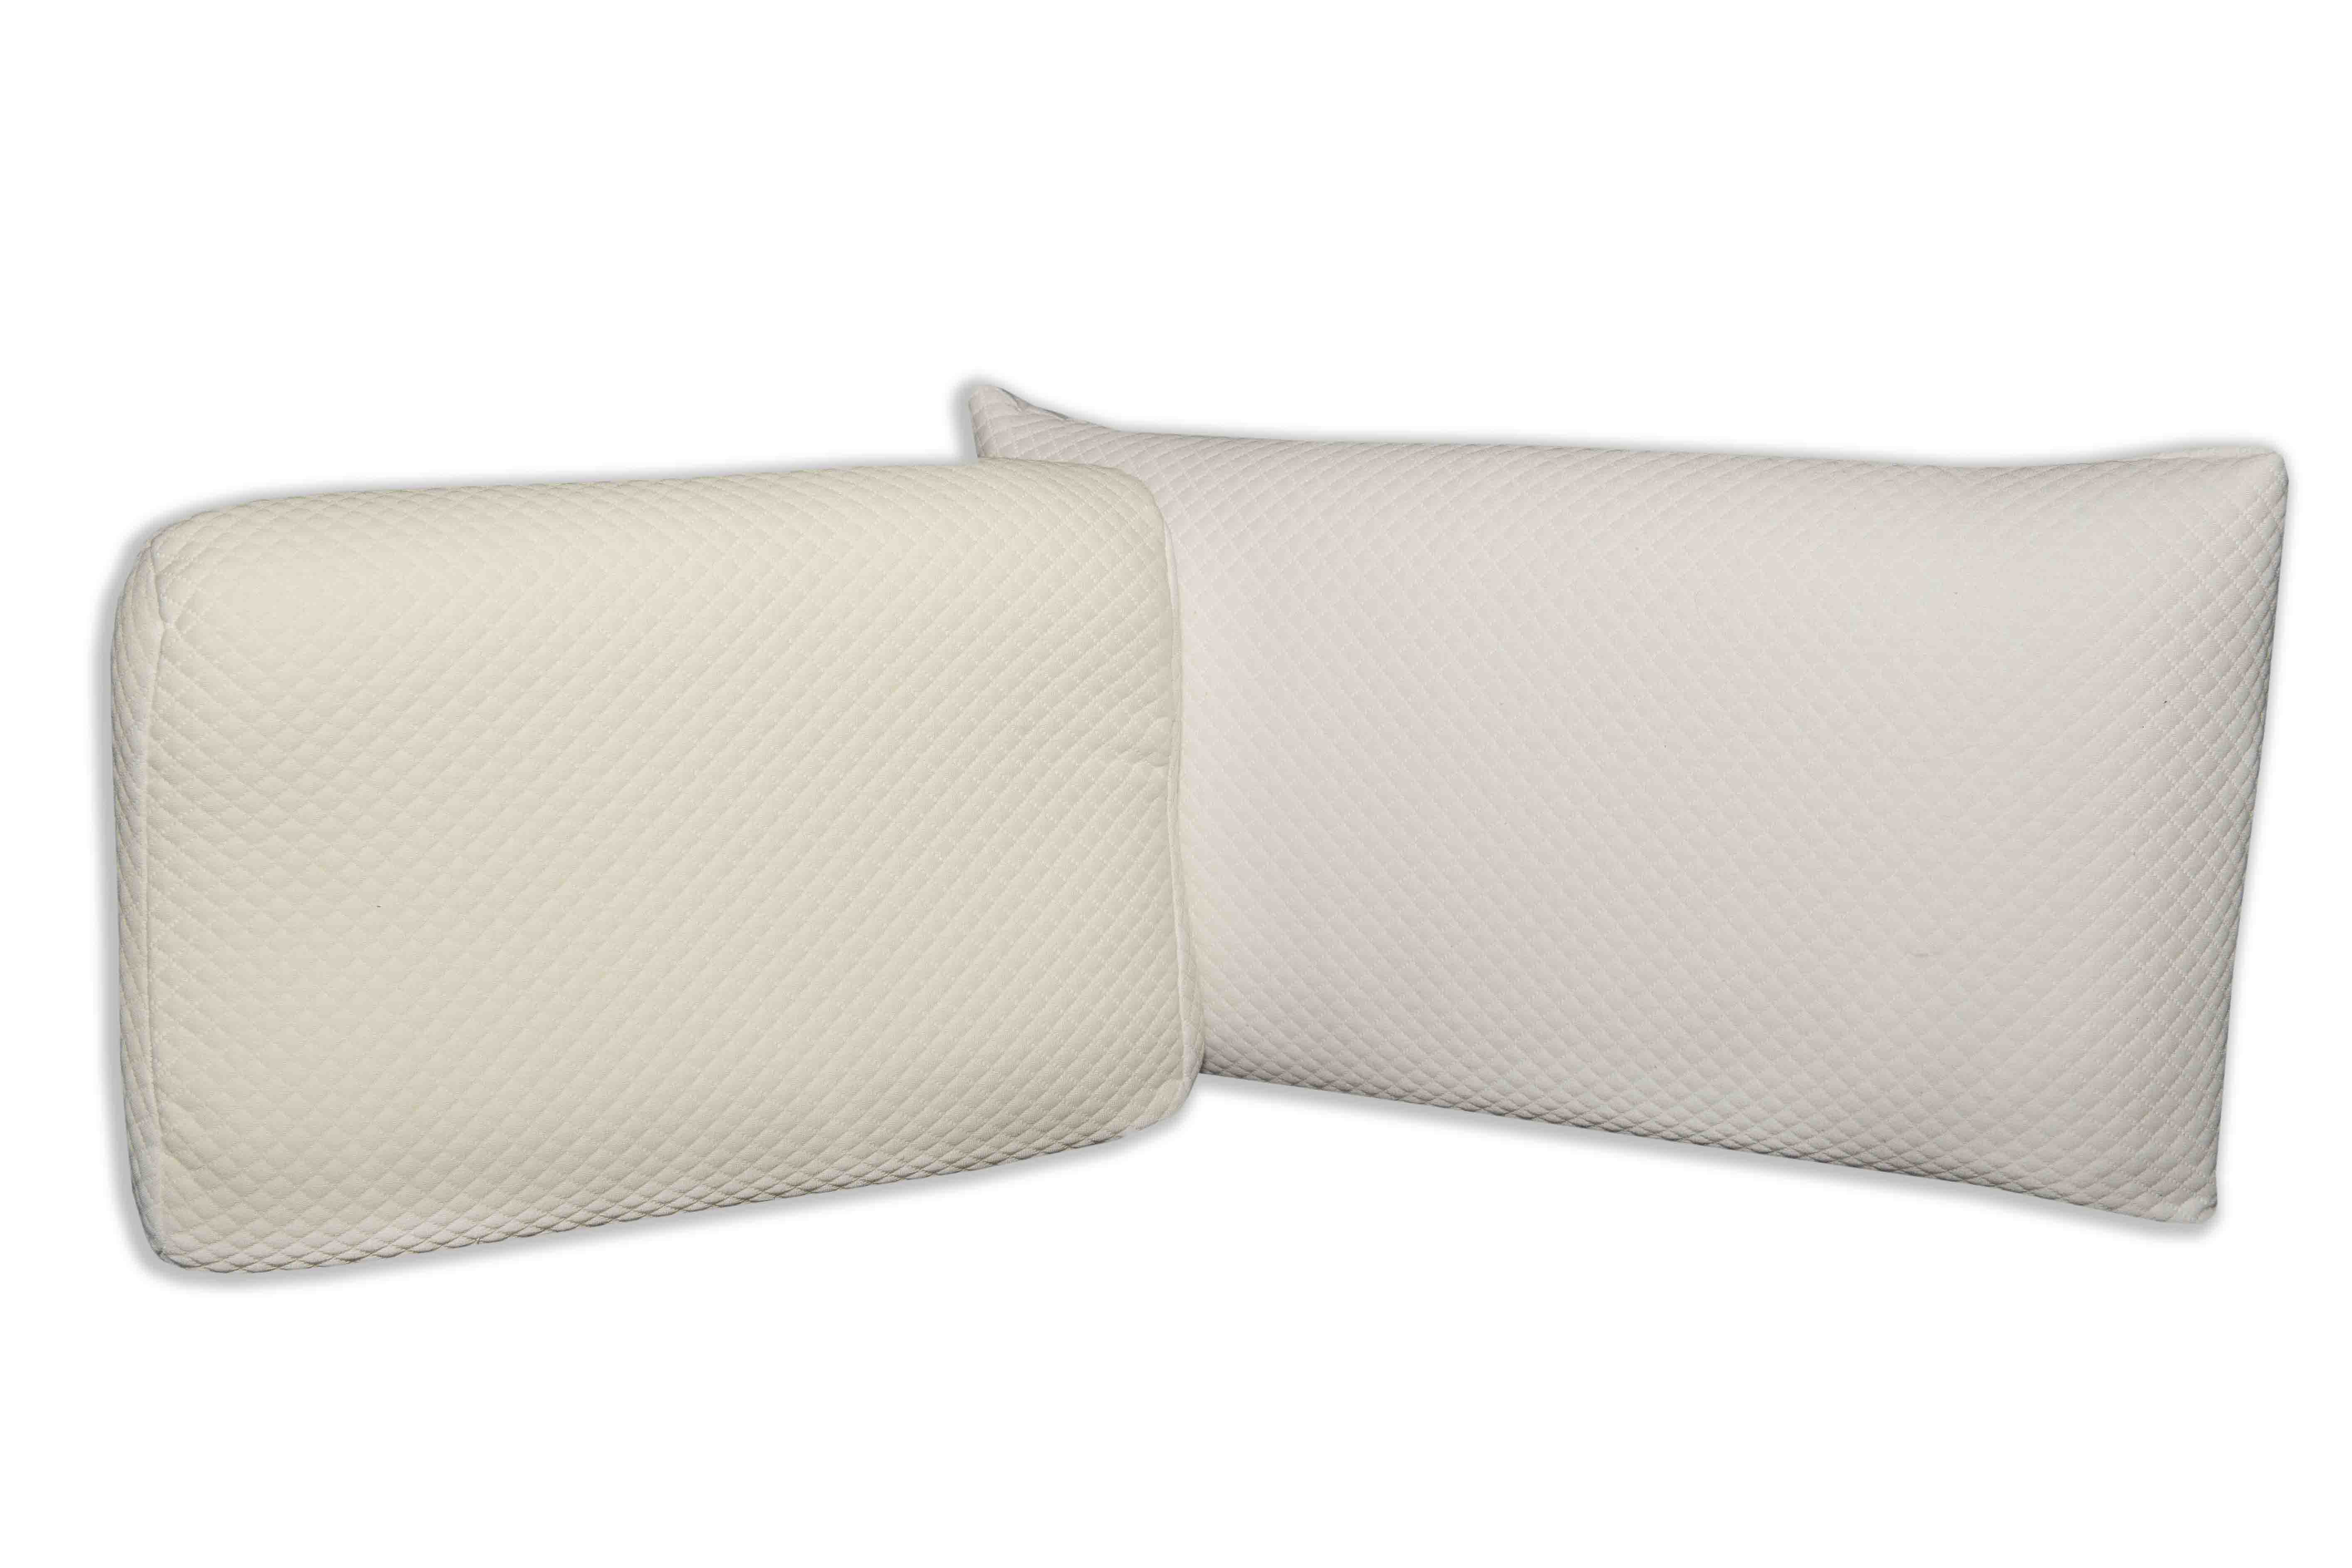 mama pillows pregnant better chiropractic pin sleep pillow pregnancy